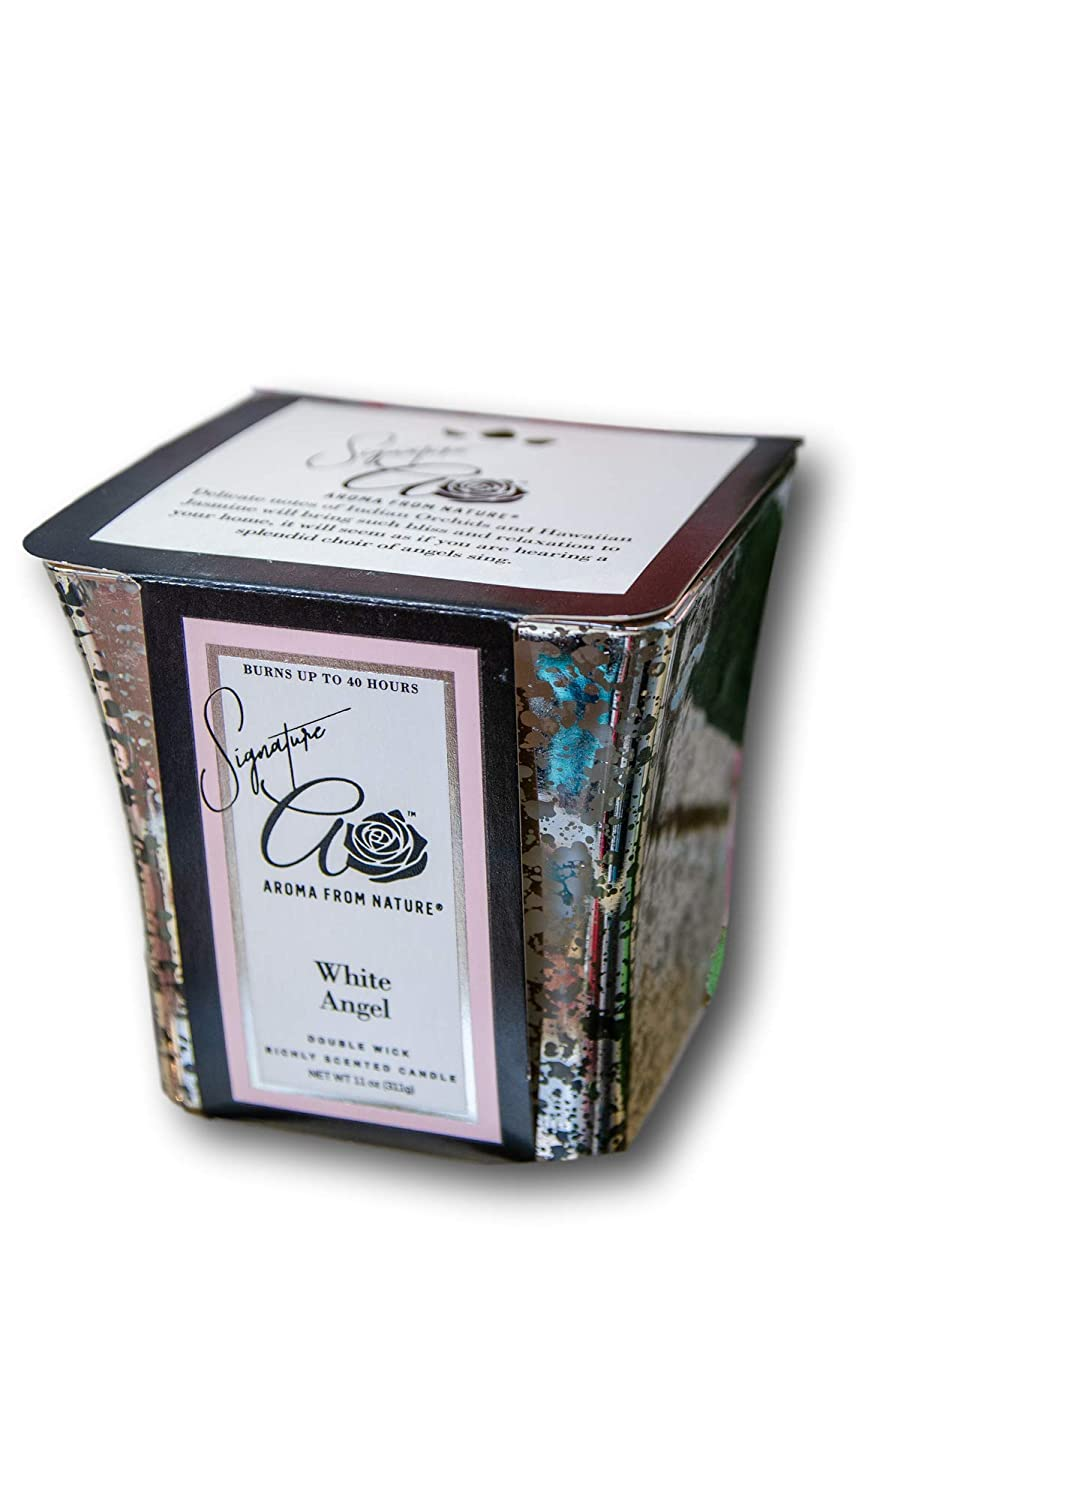 Aroma online shop From Seasonal Wrap Introduction Nature White Angel 11 C Scented oz Collection Mercury